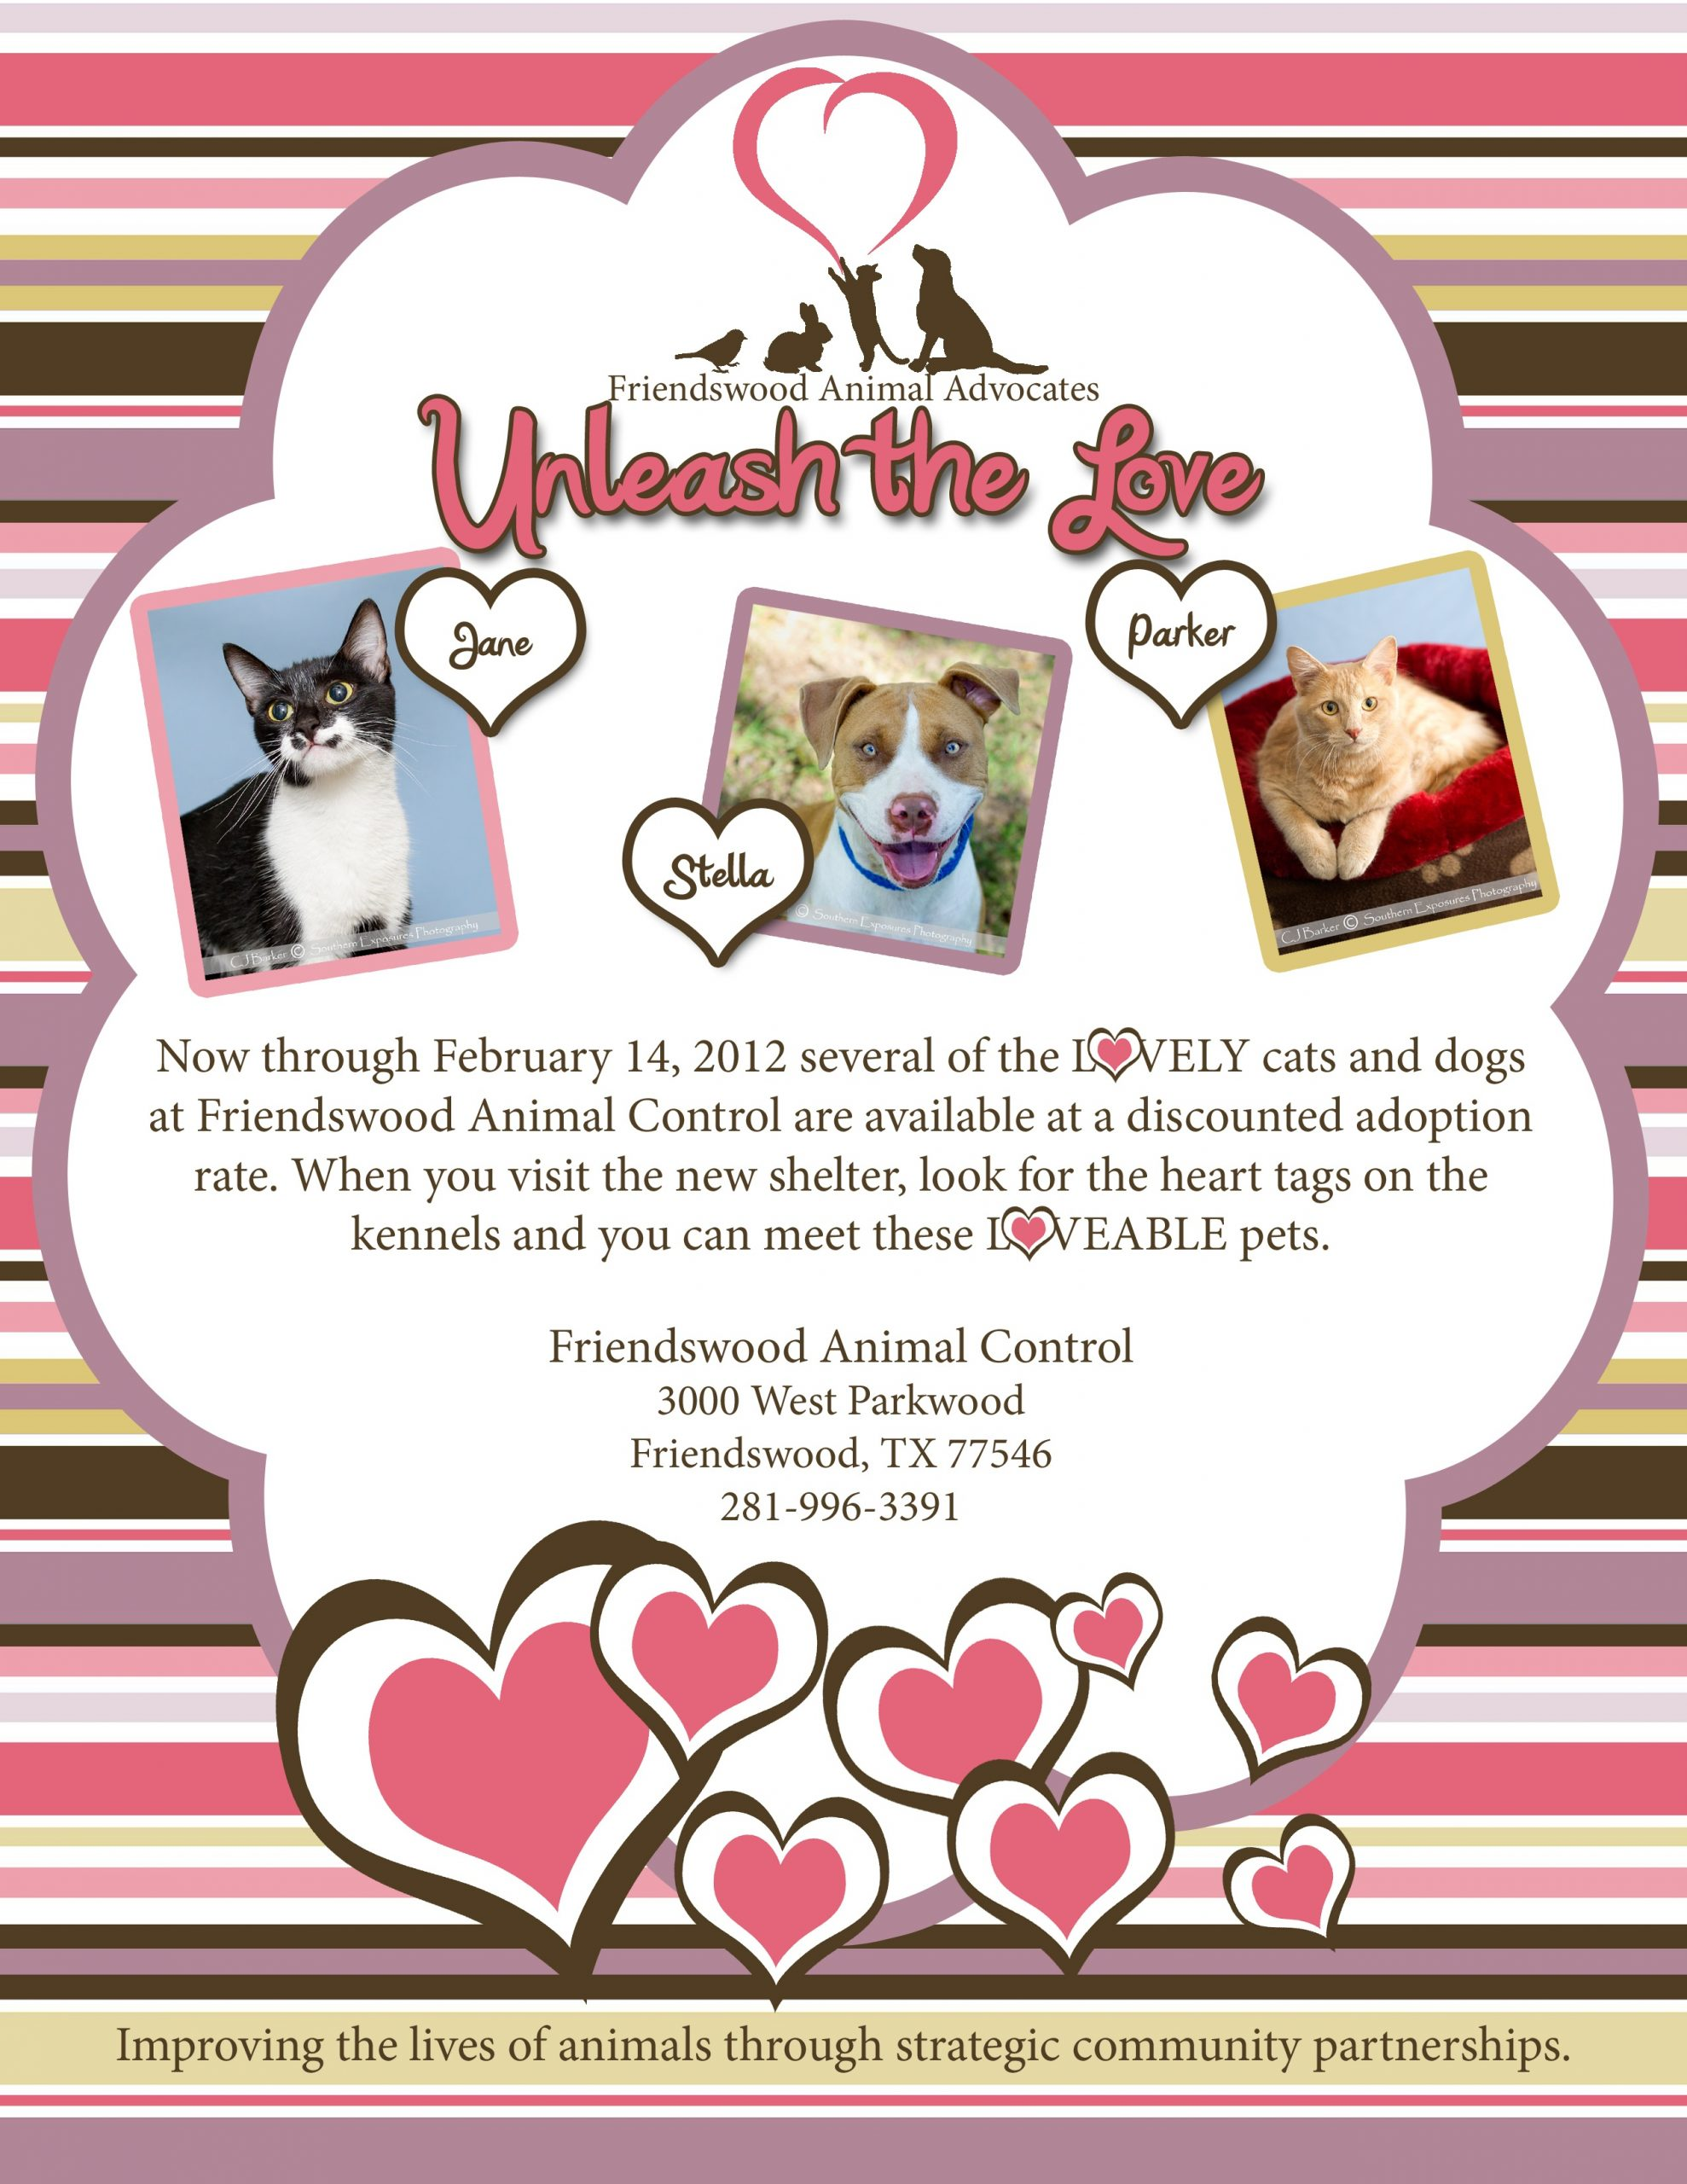 Friendswood Animal Advocates Offer Discounted Adoptions